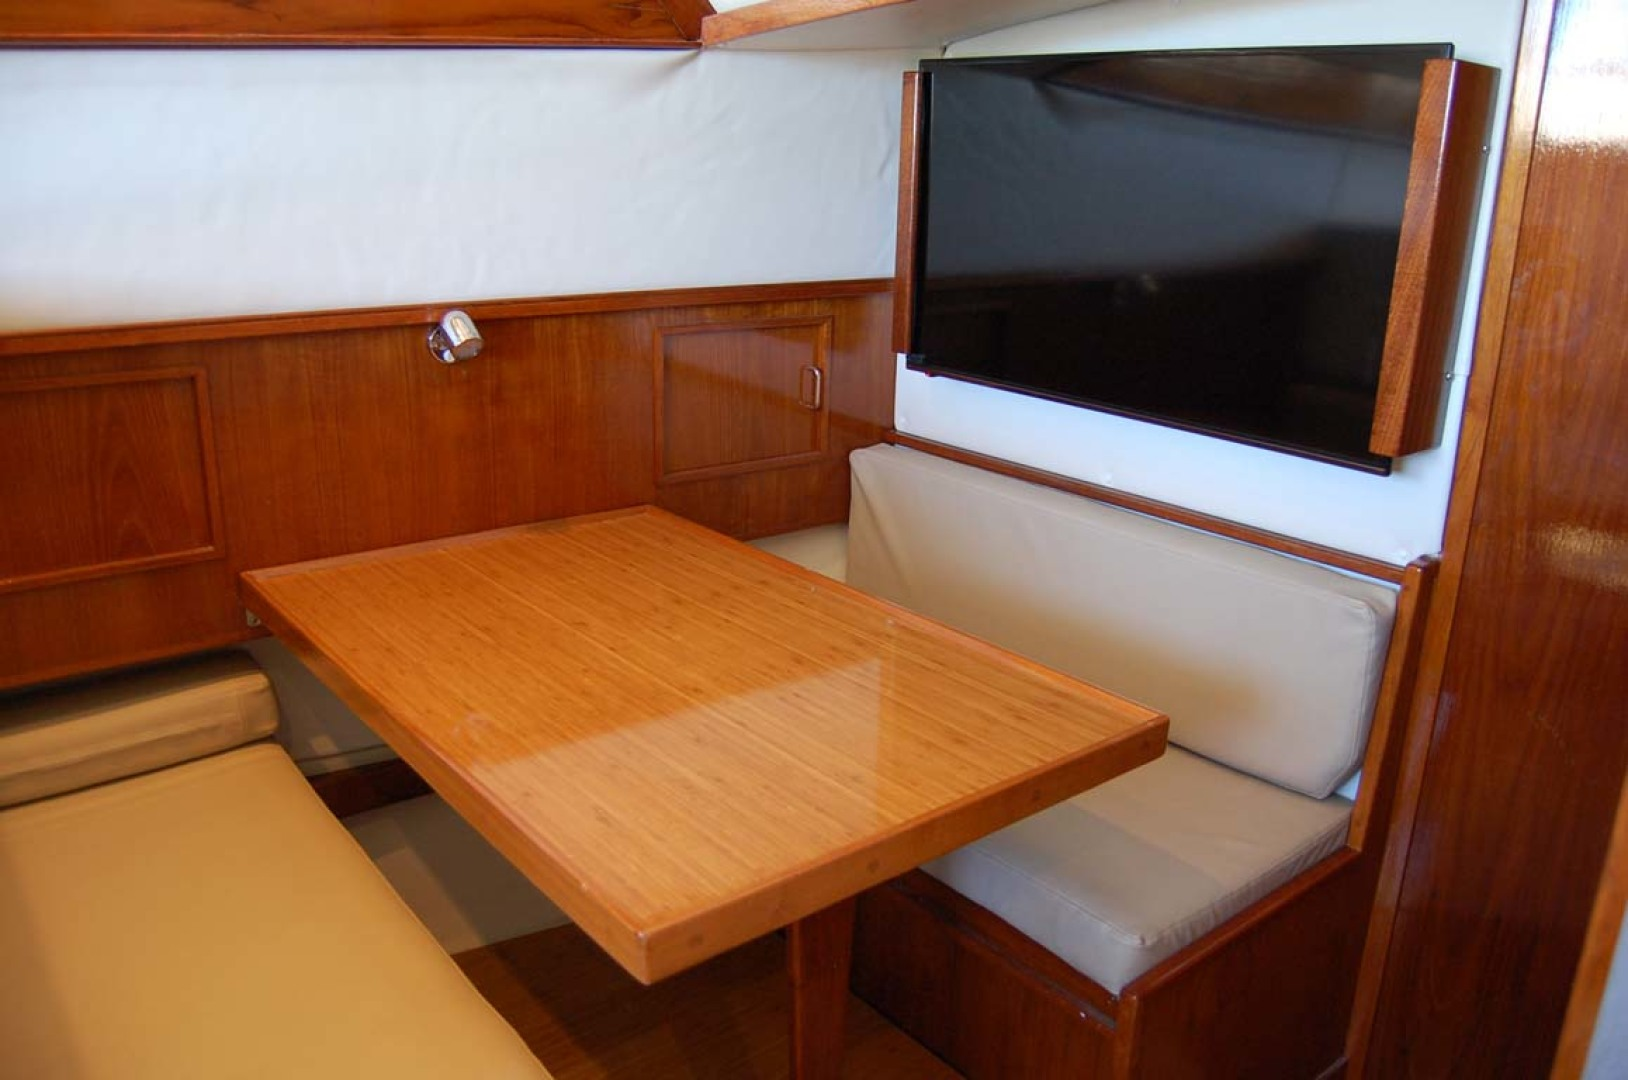 Henriques-38 Convertible 1988-Restless Southold-New York-United States-Dinette Area With TV-1228519 | Thumbnail